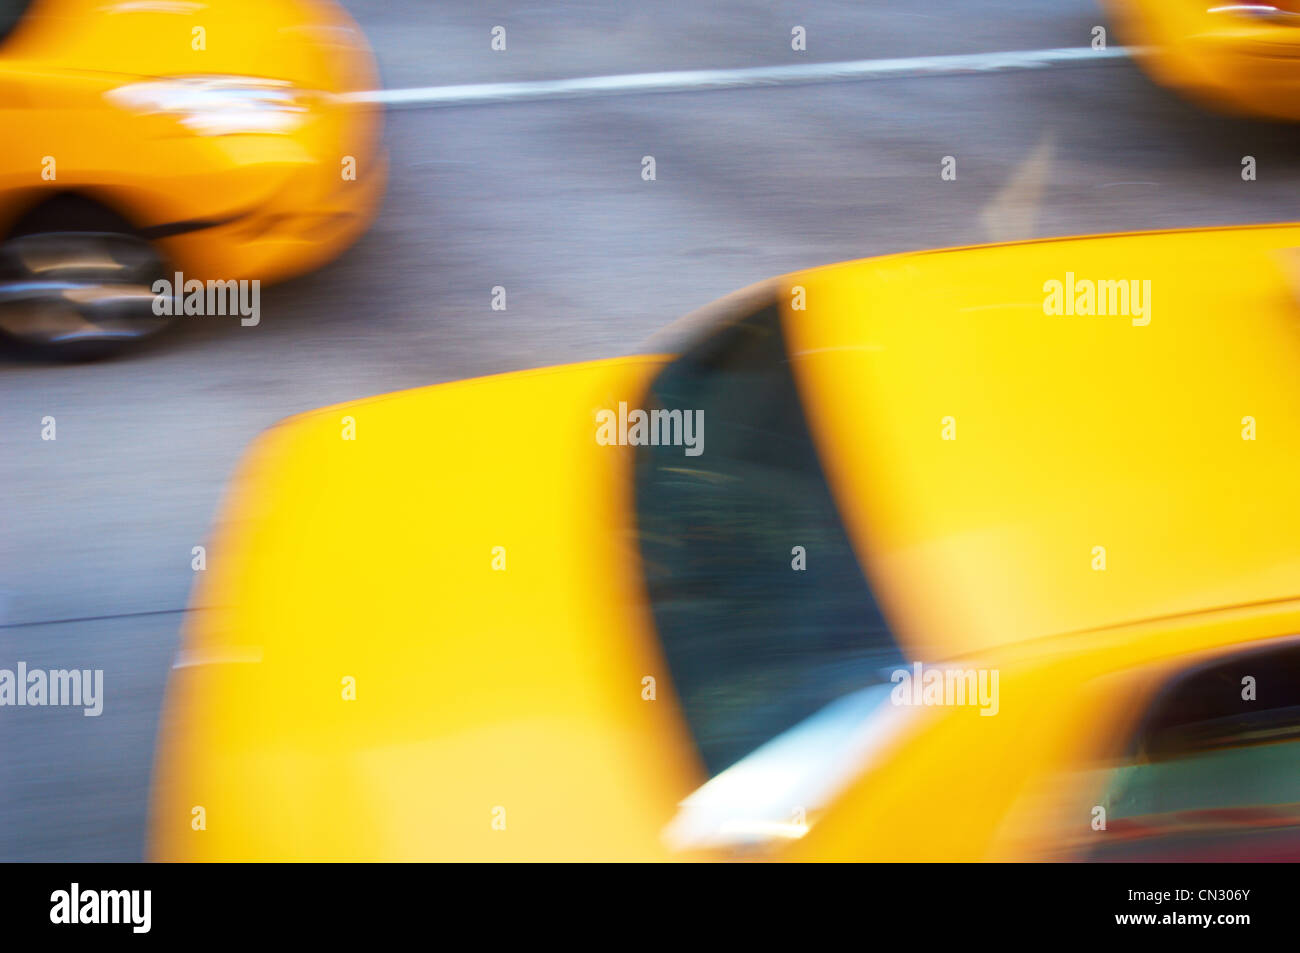 Yellow taxis in motion, New York City, USA Stock Photo